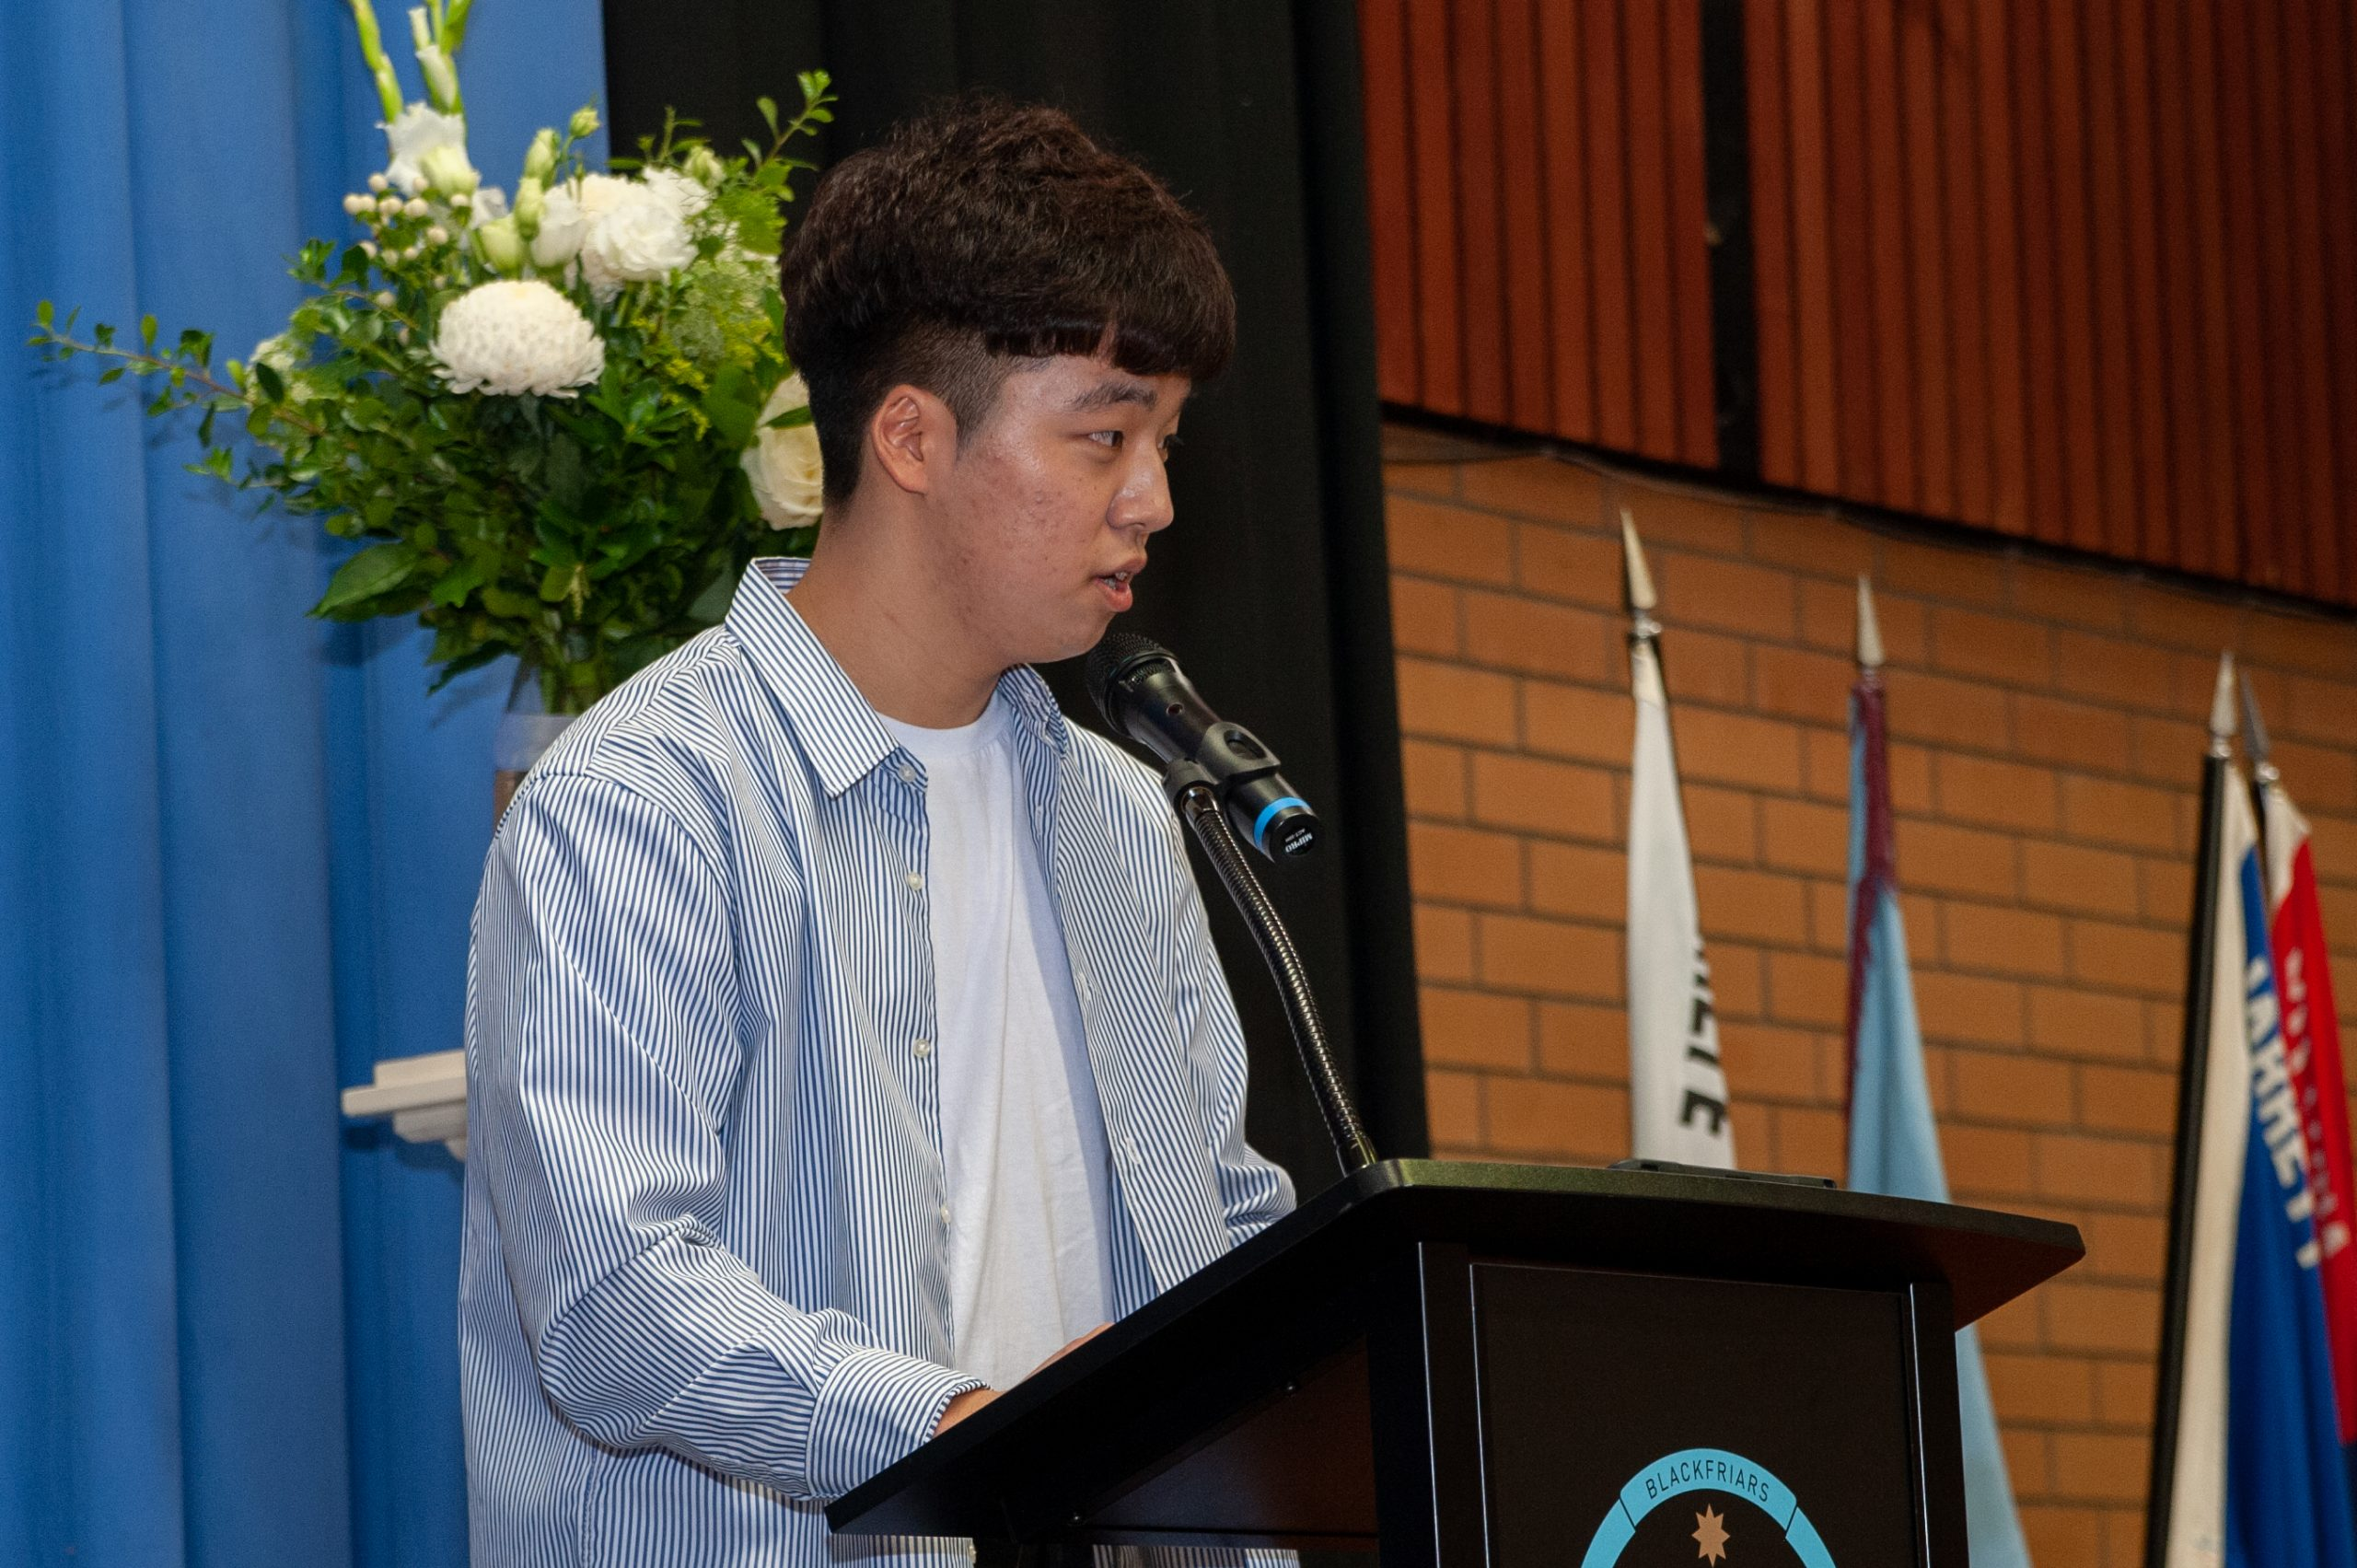 Youngmo (Silas) Koo delivers 2019 Laureate Address